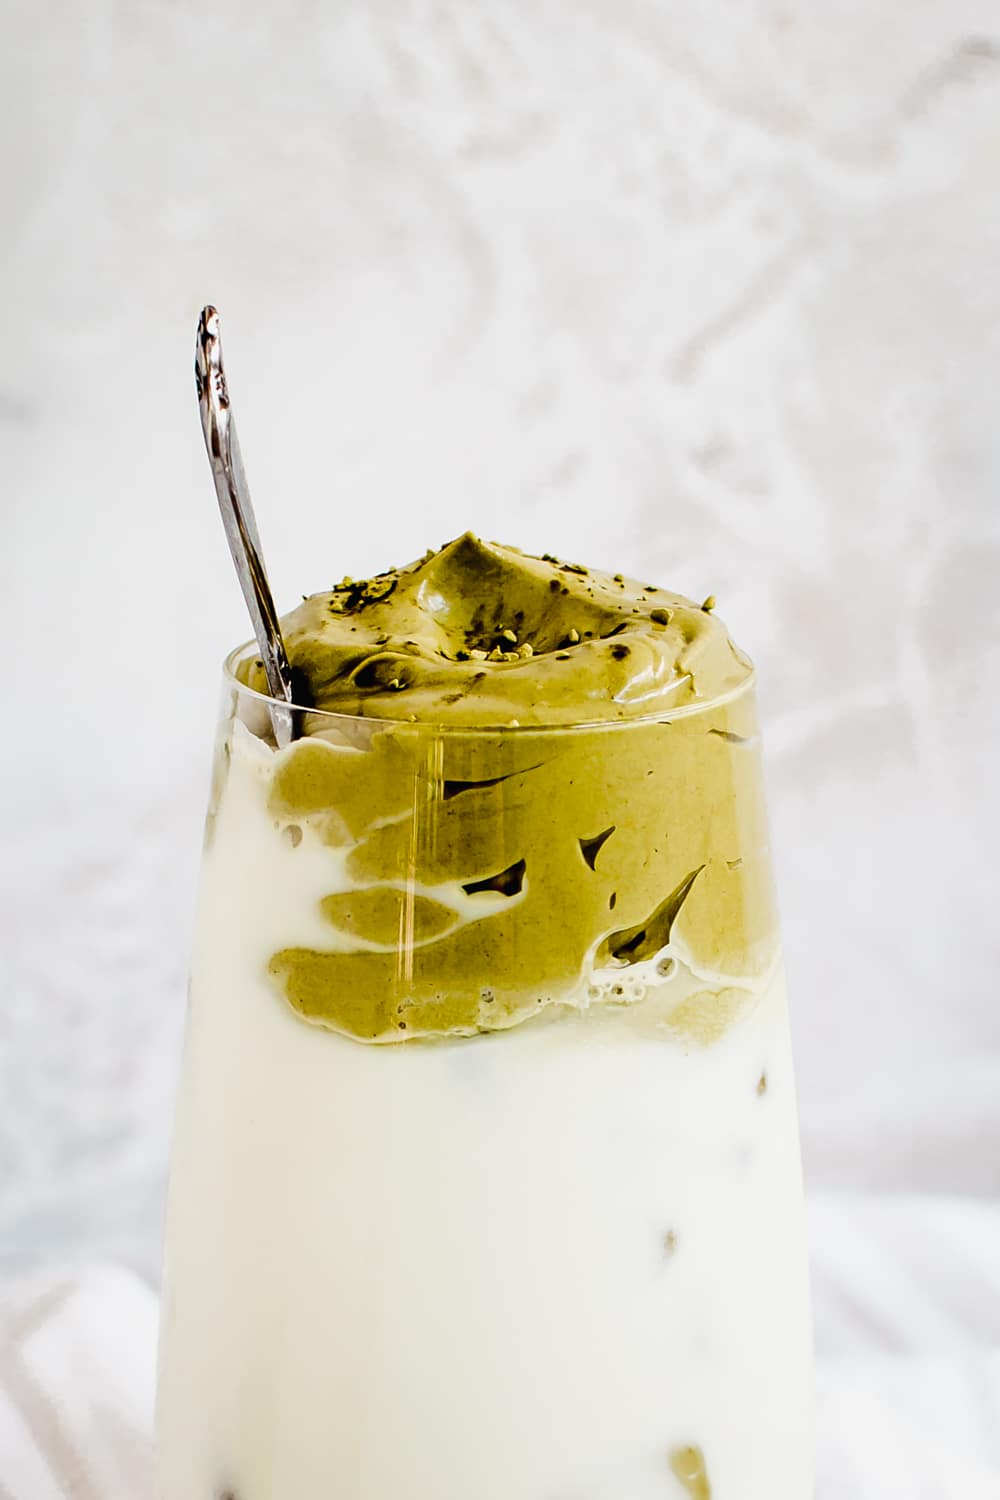 dalgona matcha whip on top of iced milk in glass